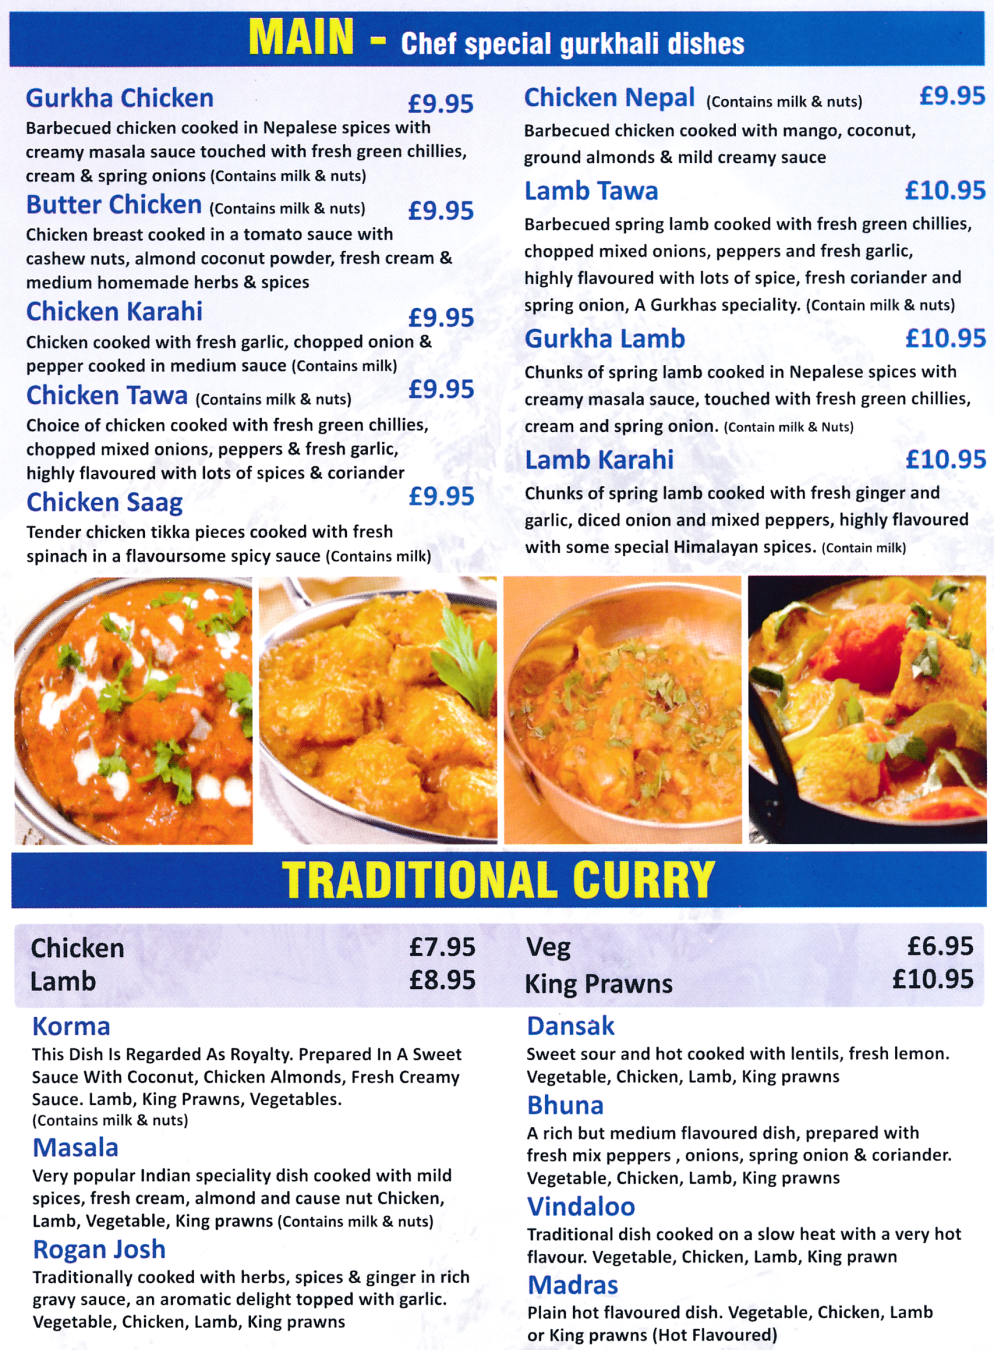 Menu for Gurkha Express Nepalese and Indian cuisine restaurant, takeaway and delivery in Beeston